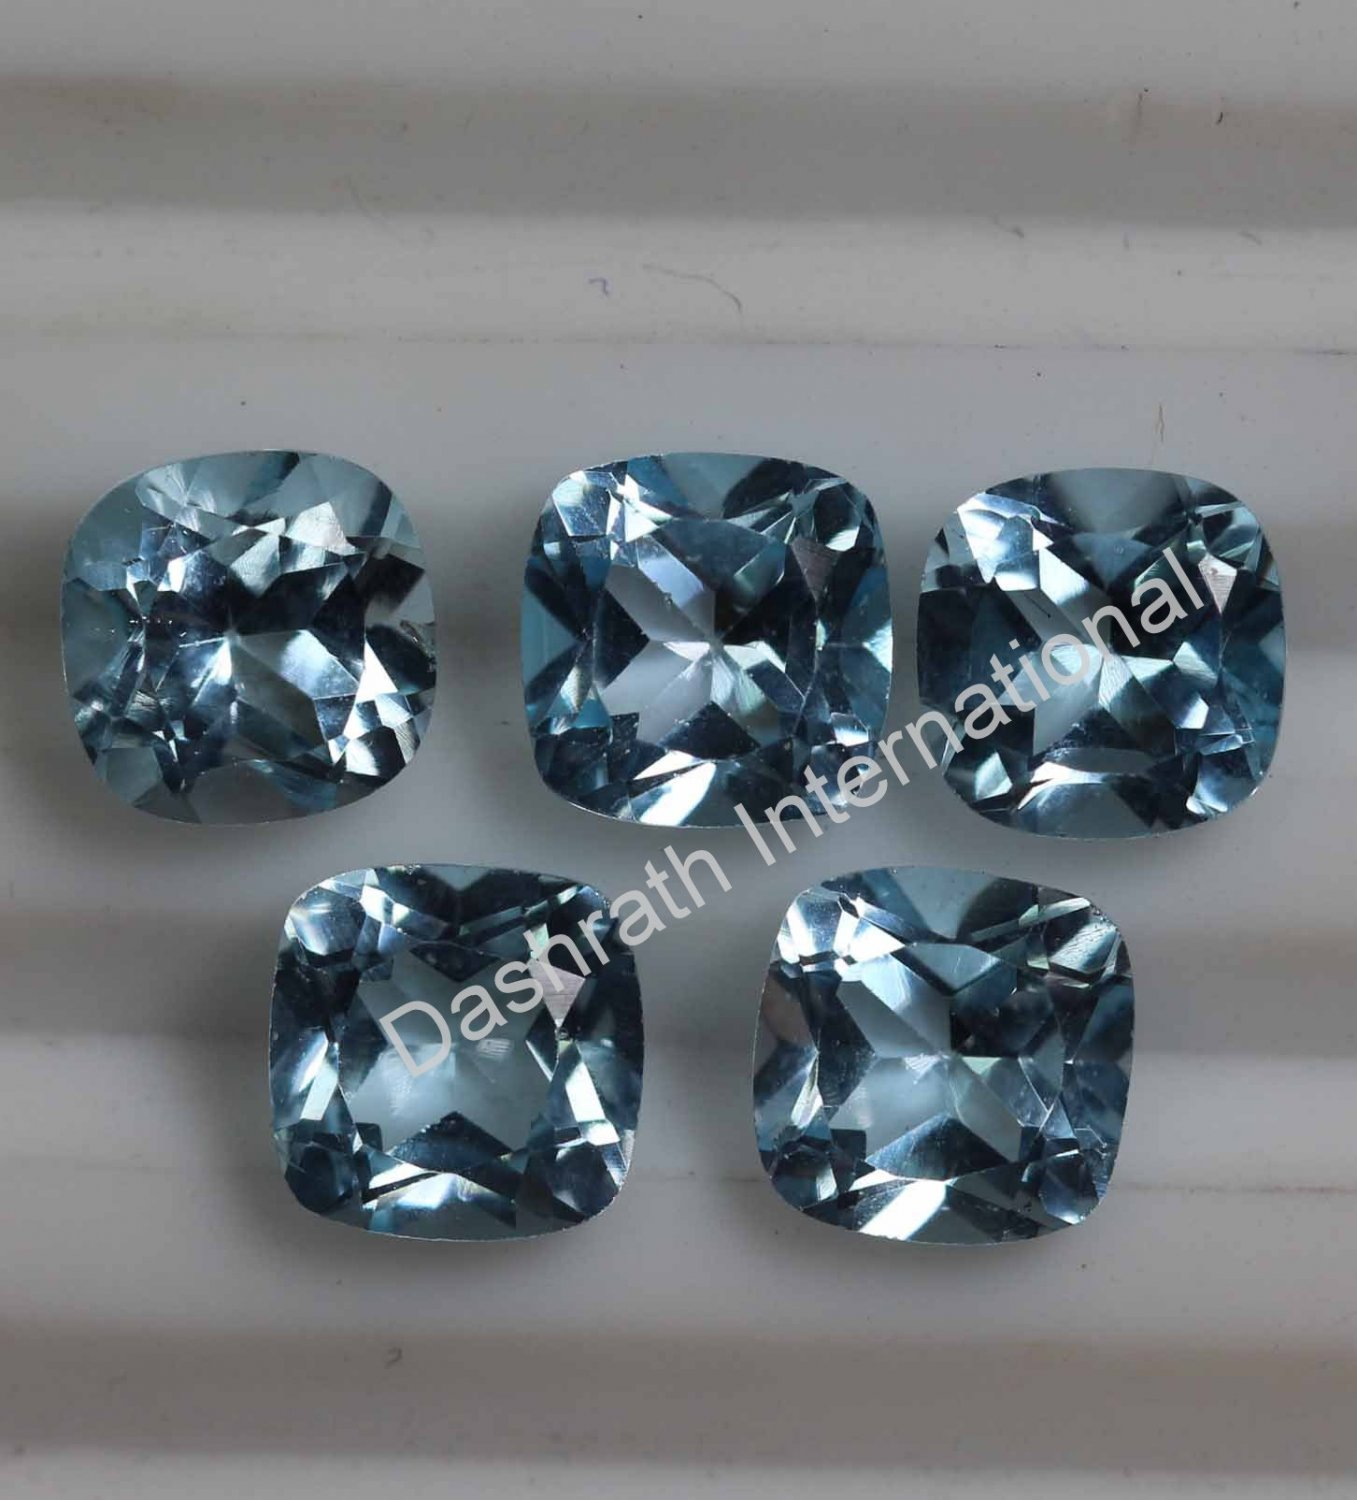 8mm Natural Sky Blue Topaz Faceted Cut Cushion 50 Pieces Lot Top Quality Loose Gemstone